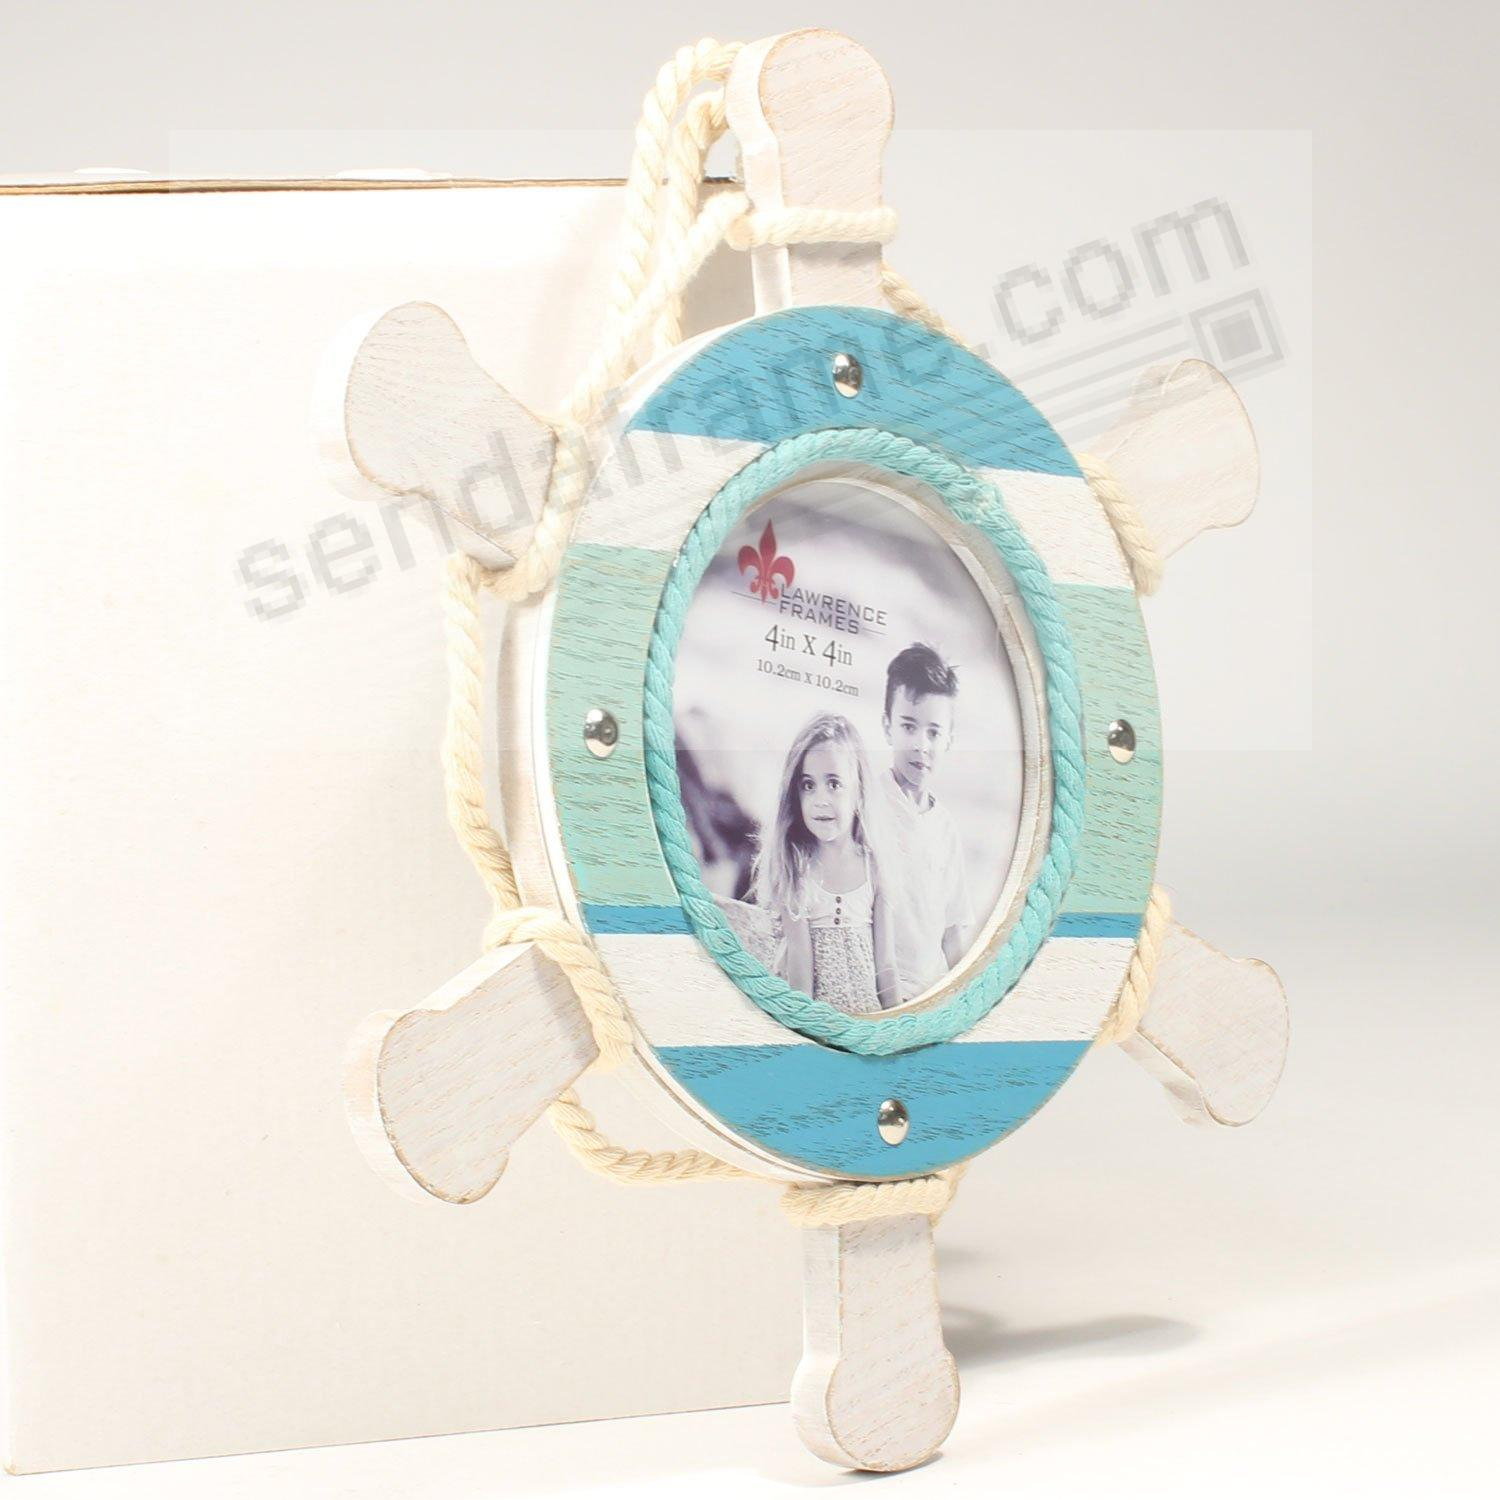 Home port ship wheel picture 4x4 frame by prinz picture frames home port ship wheel picture 4x4 frame by prinz jeuxipadfo Image collections